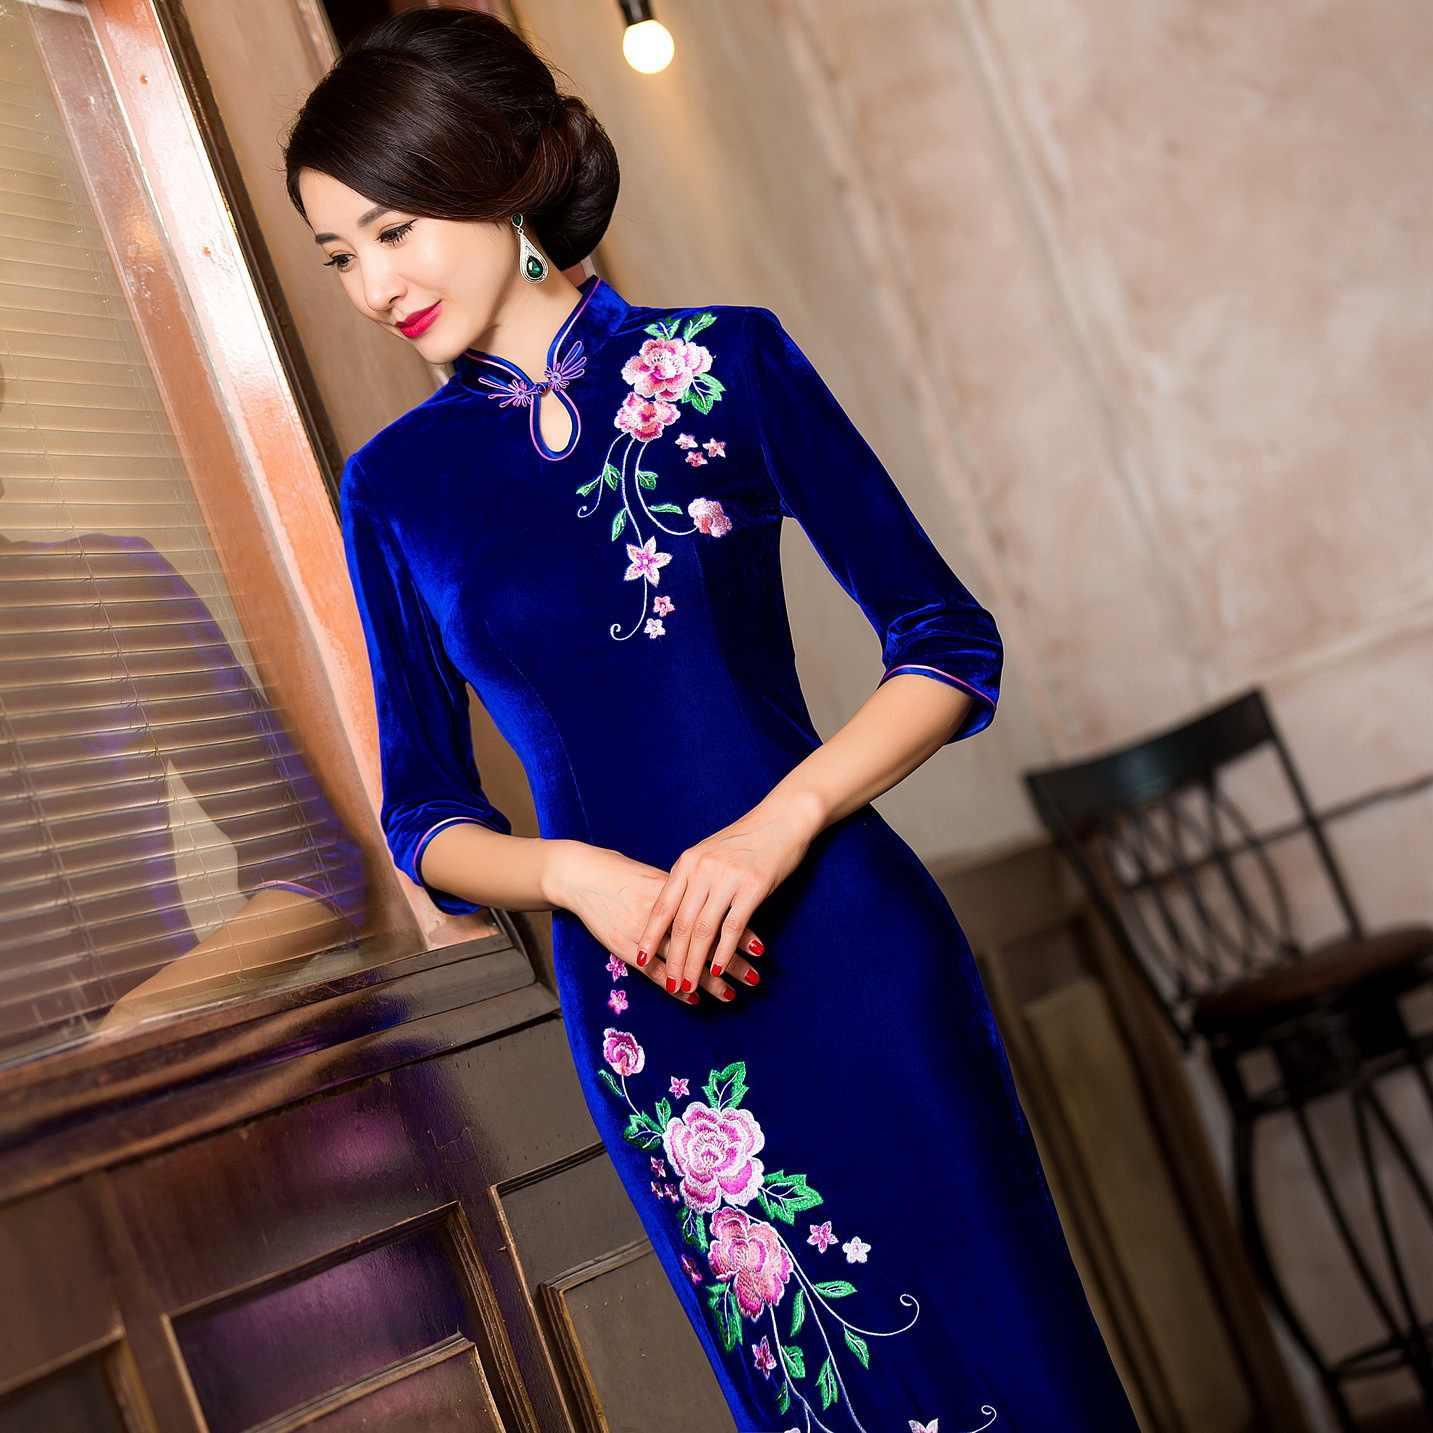 Bleu royal cheongsam grande taille robes en velours velours debardeur chinois traditionnel long cheongsam robe orientale modèles